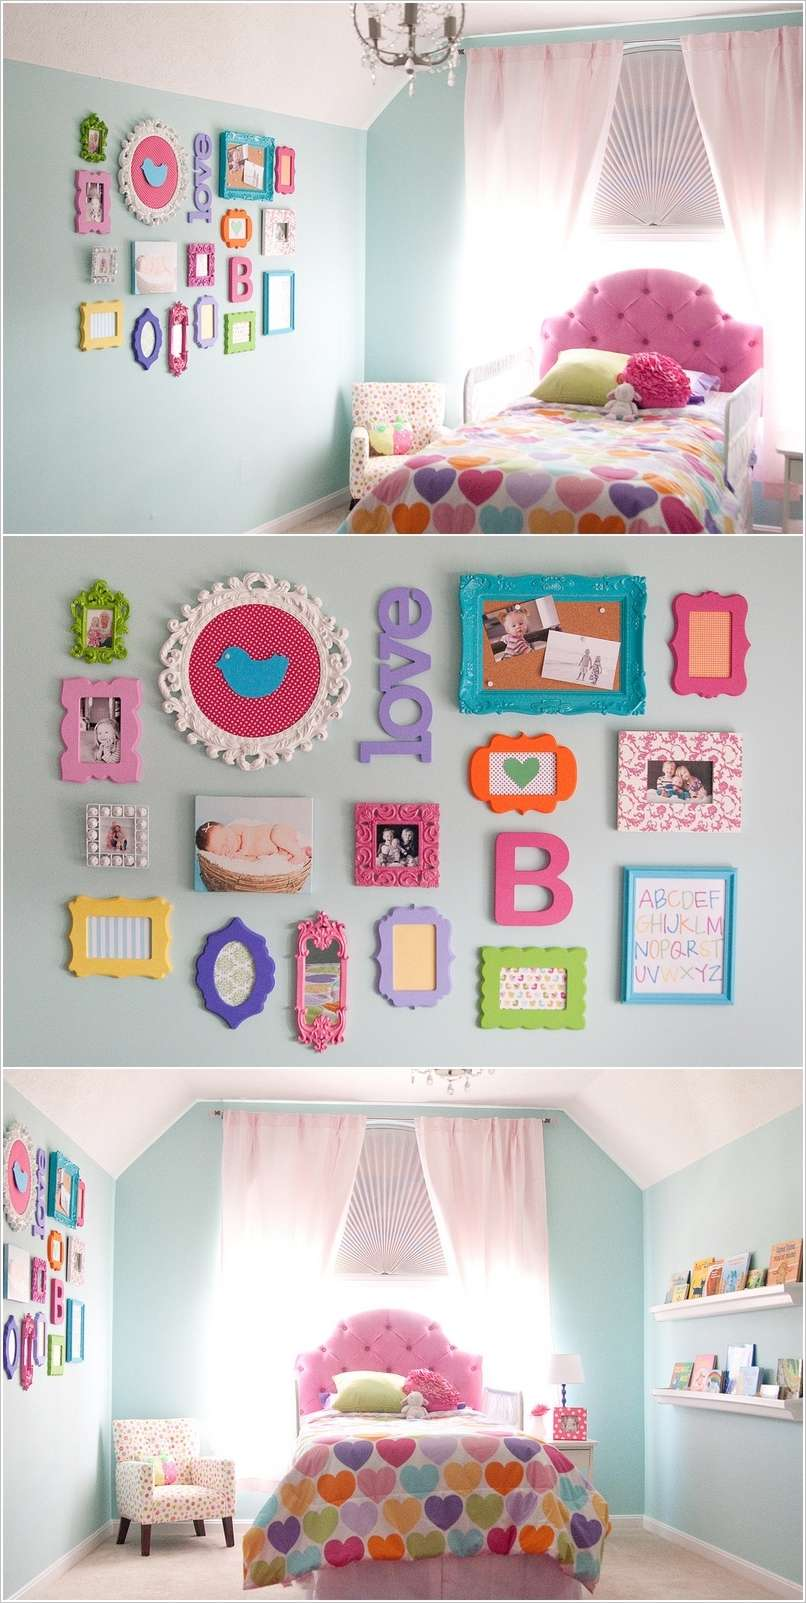 10 cute ideas to decorate a toddler girl 39 s room - Girls room ideas ...